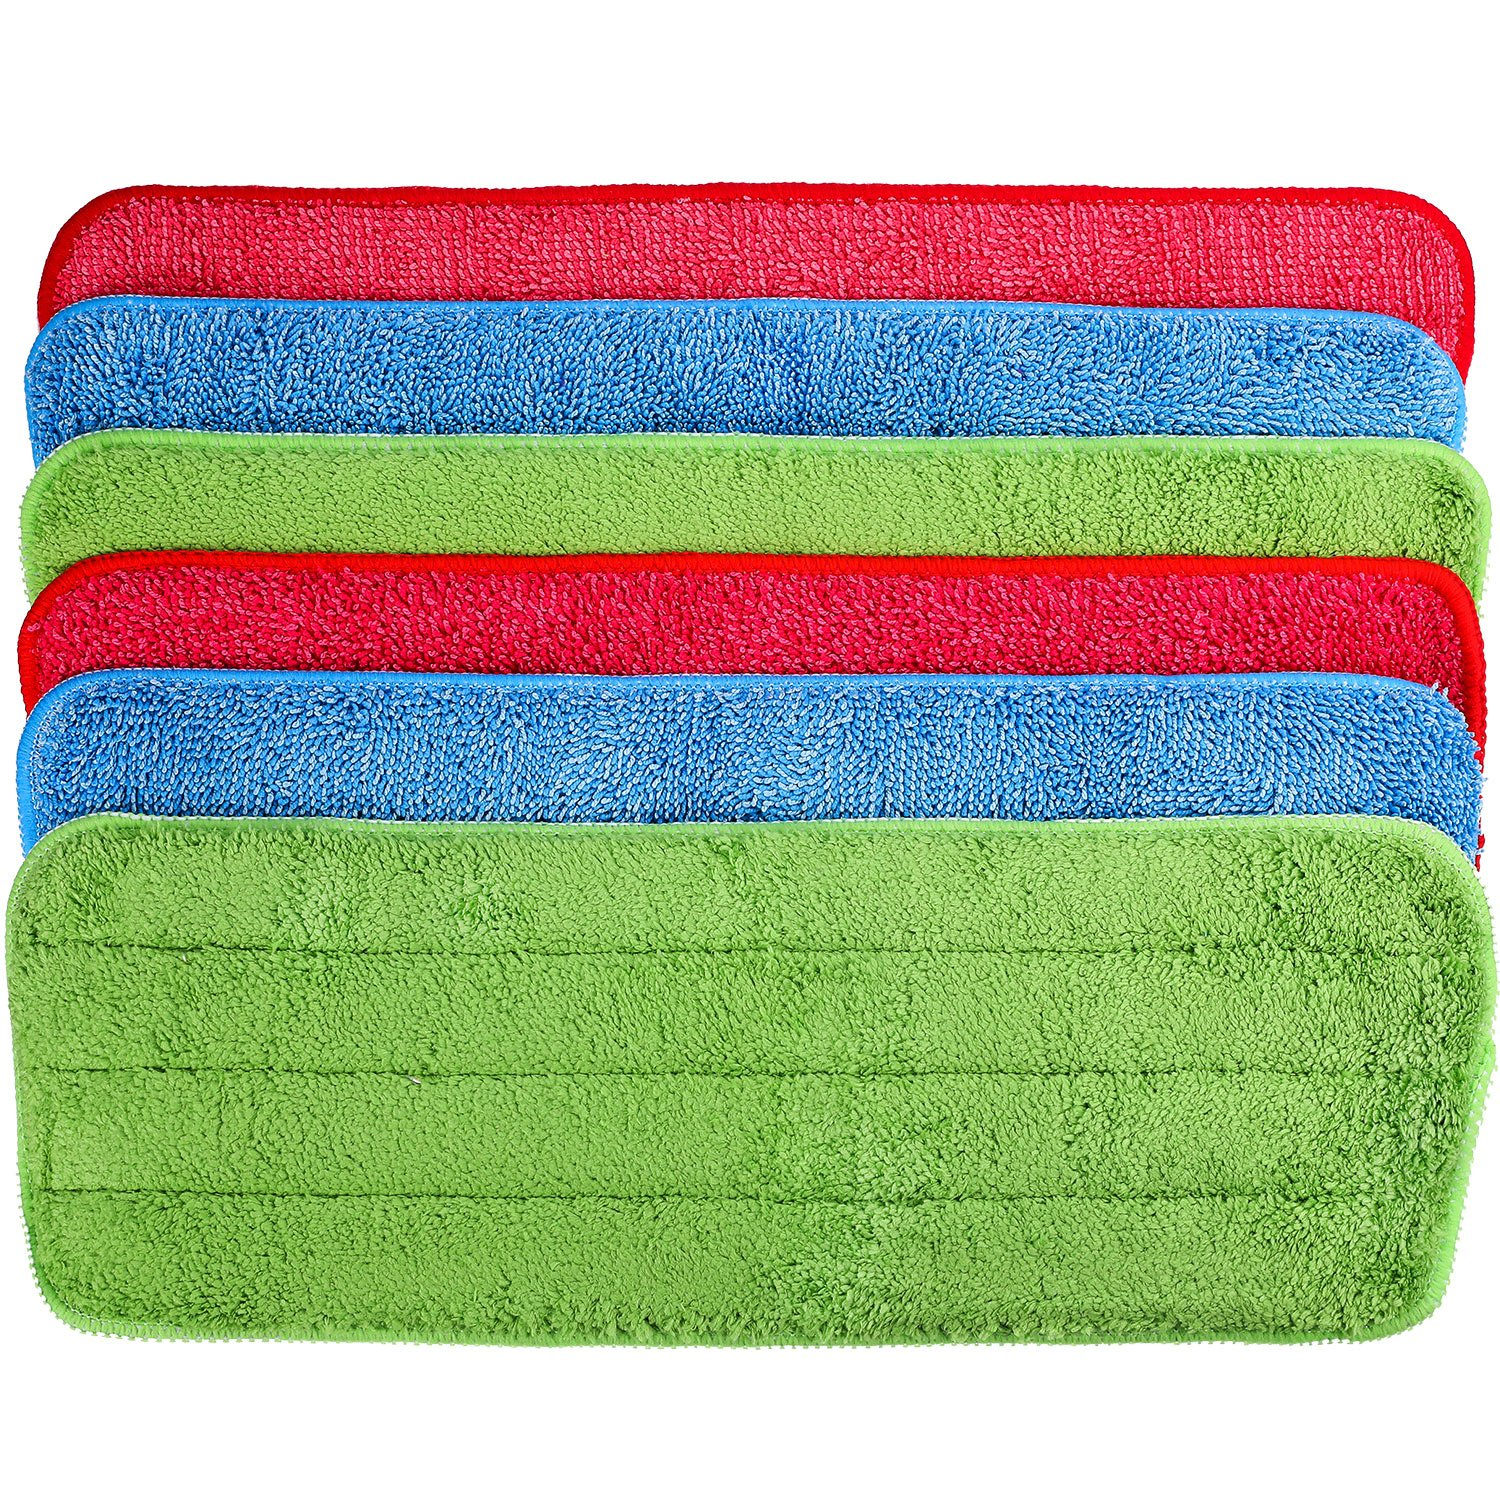 TecUnite 6 Pieces Microfiber Cleaning Pads Reveal Mop 16 x 5.5 inch Fit for Most Spray Mops and Reveal Mops Washable